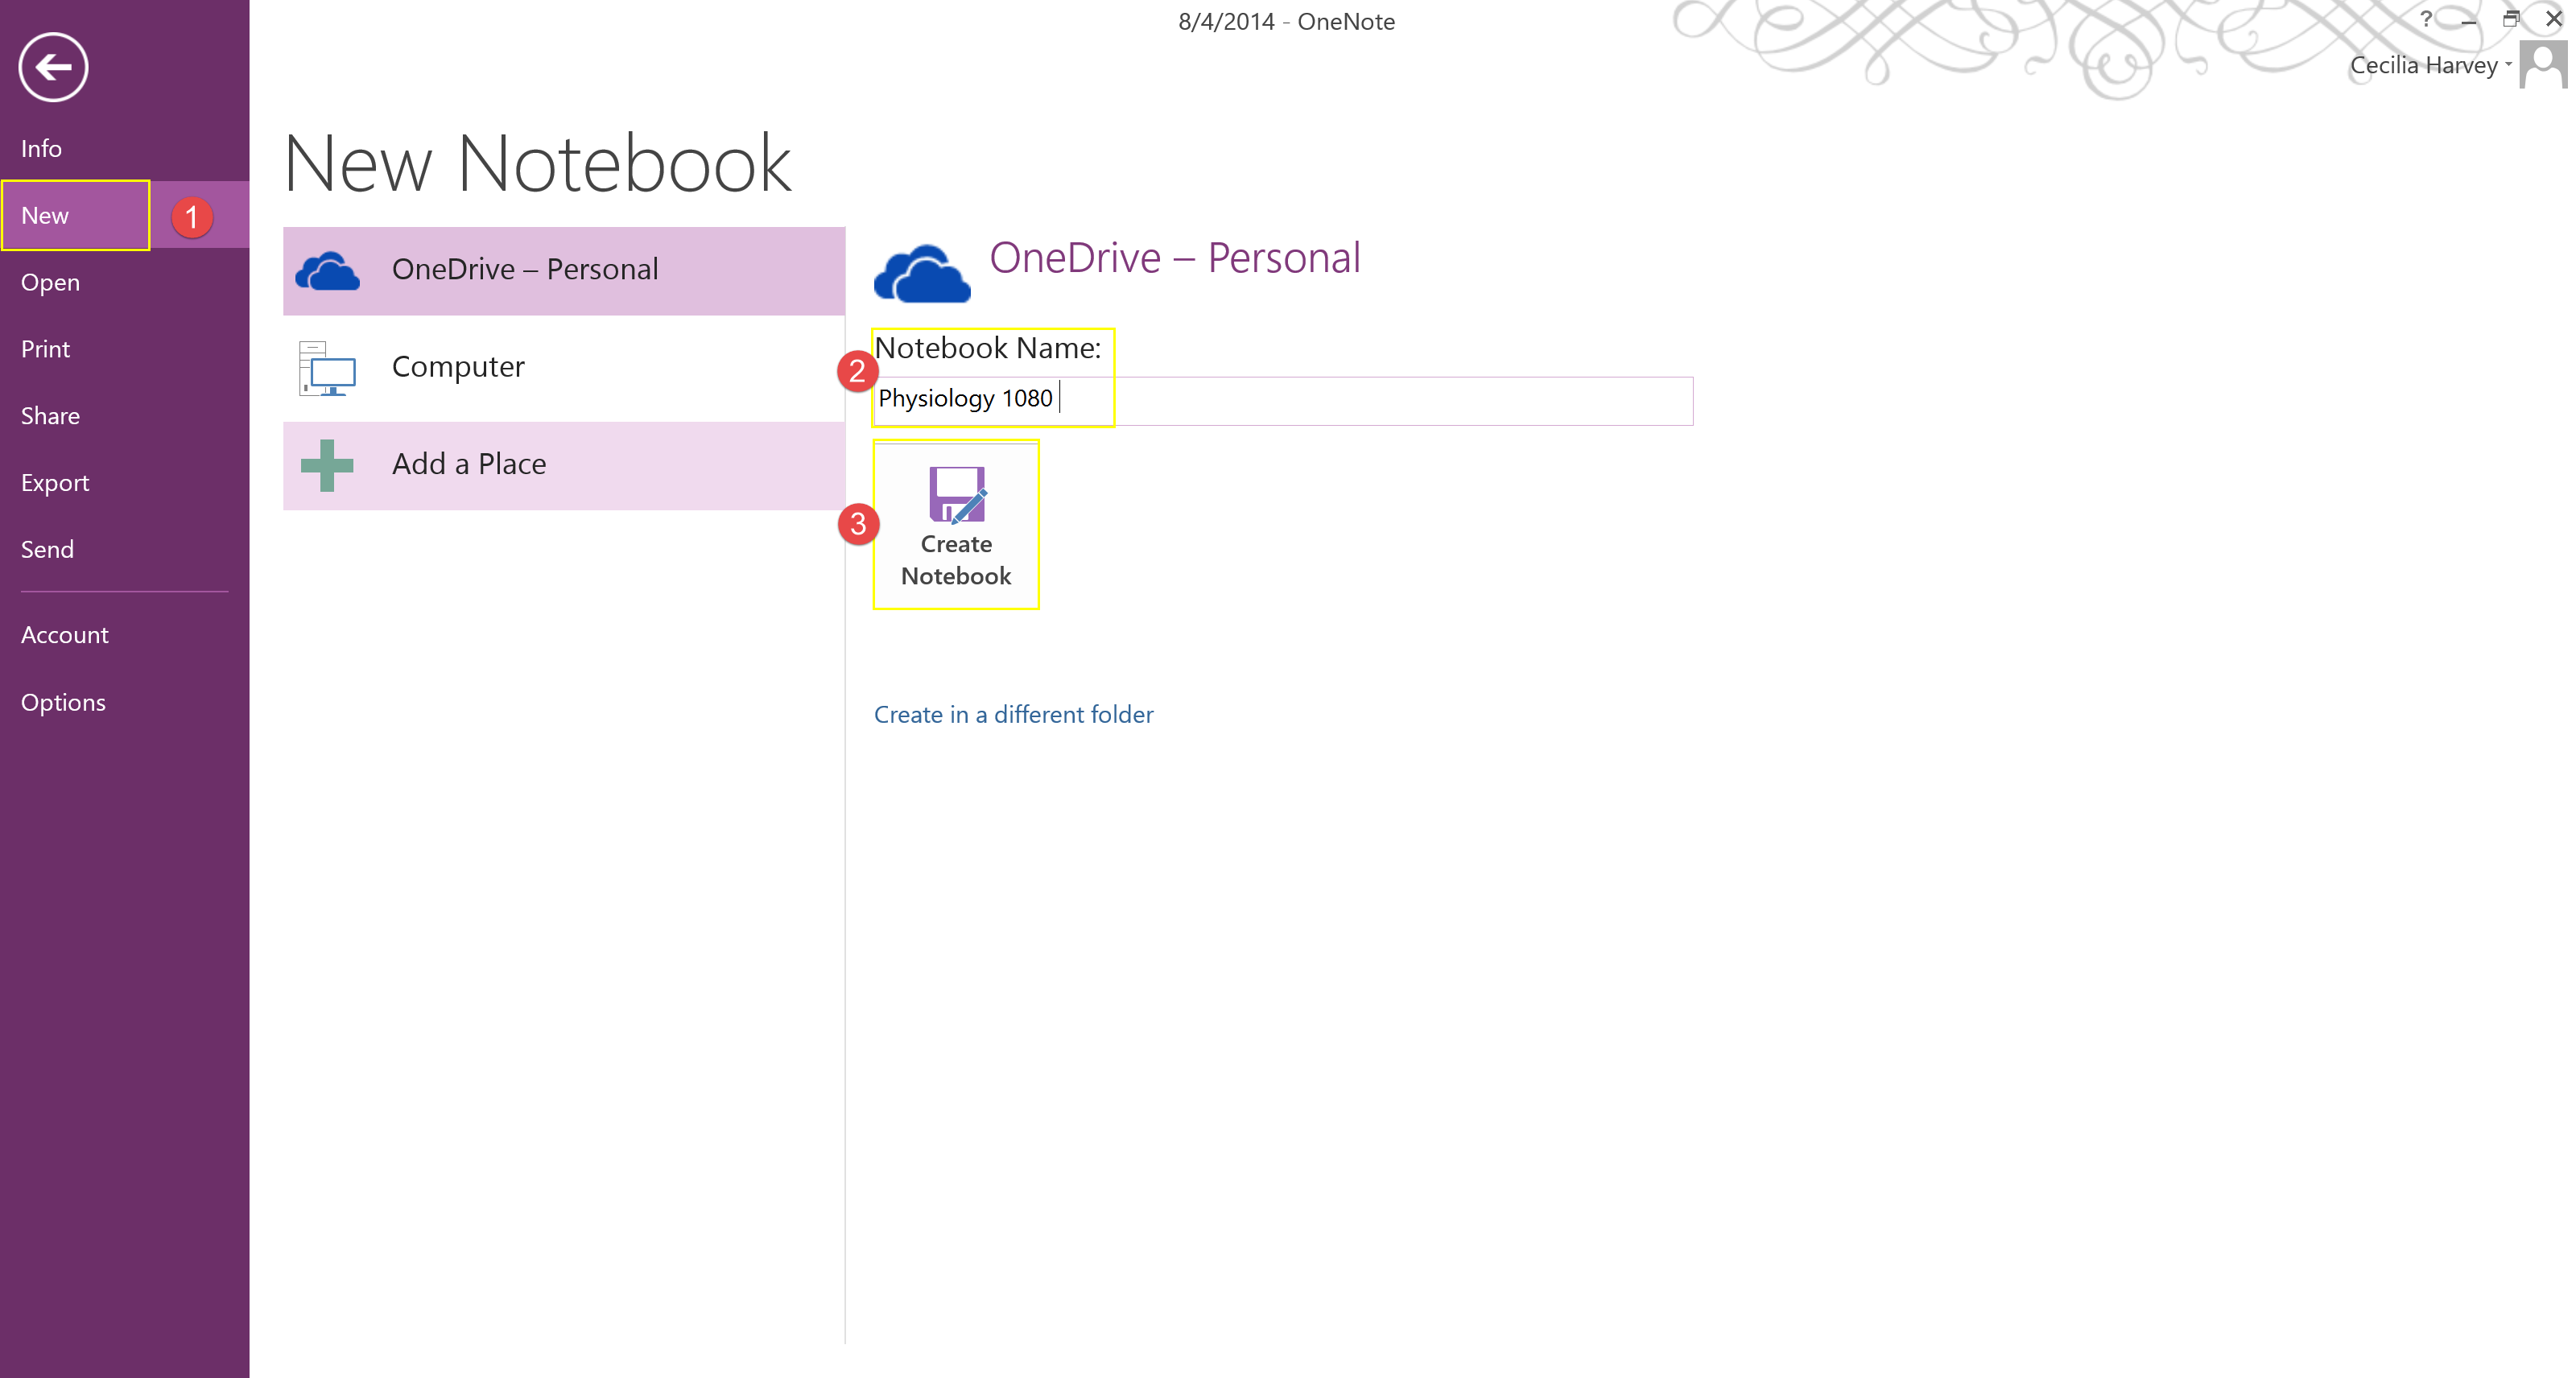 OneNote New Notebook